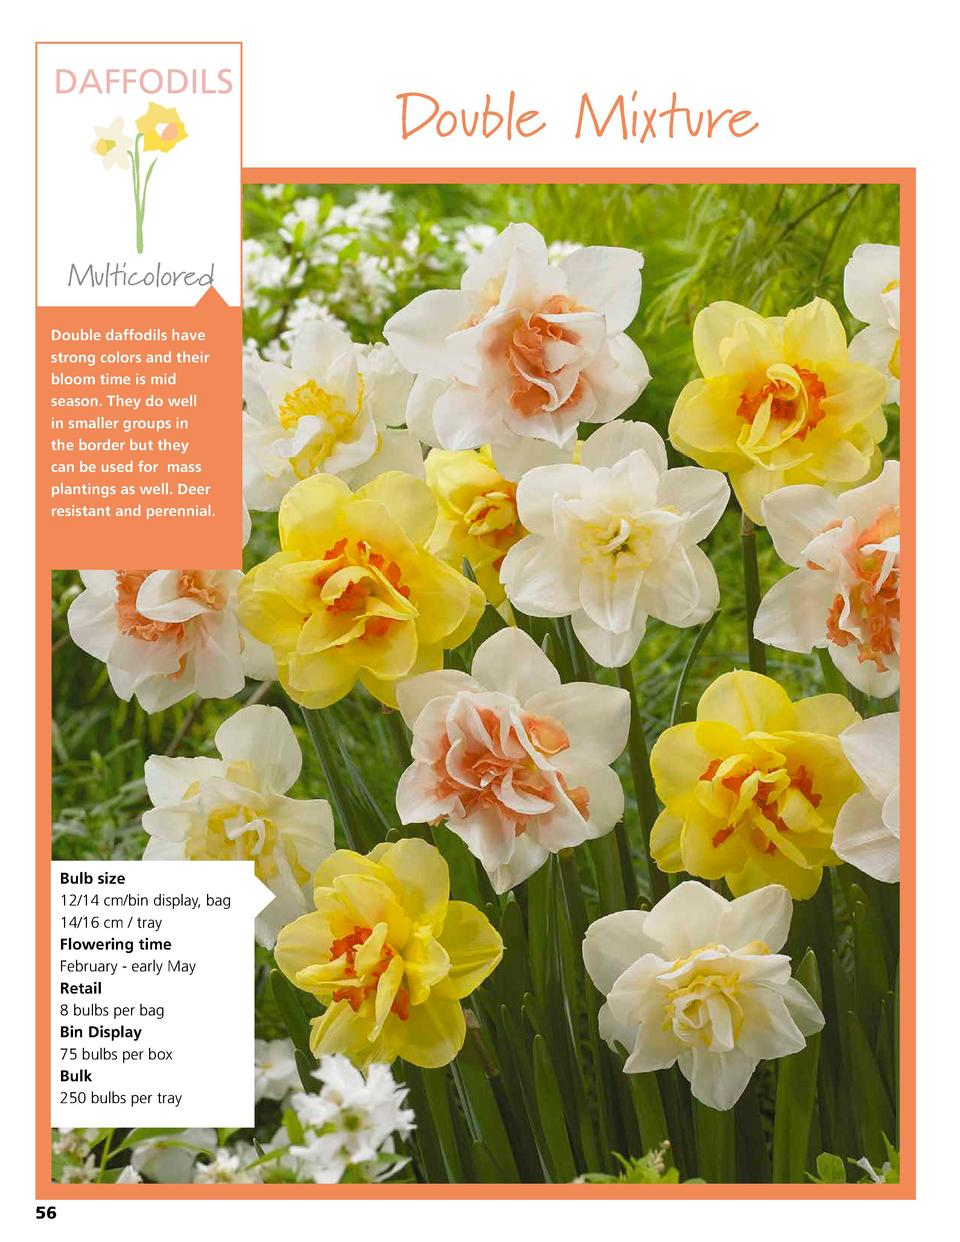 DAFFODILS  Multicolored Double daffodils have strong colors and their bloom time is mid season. They do well in smaller gr...